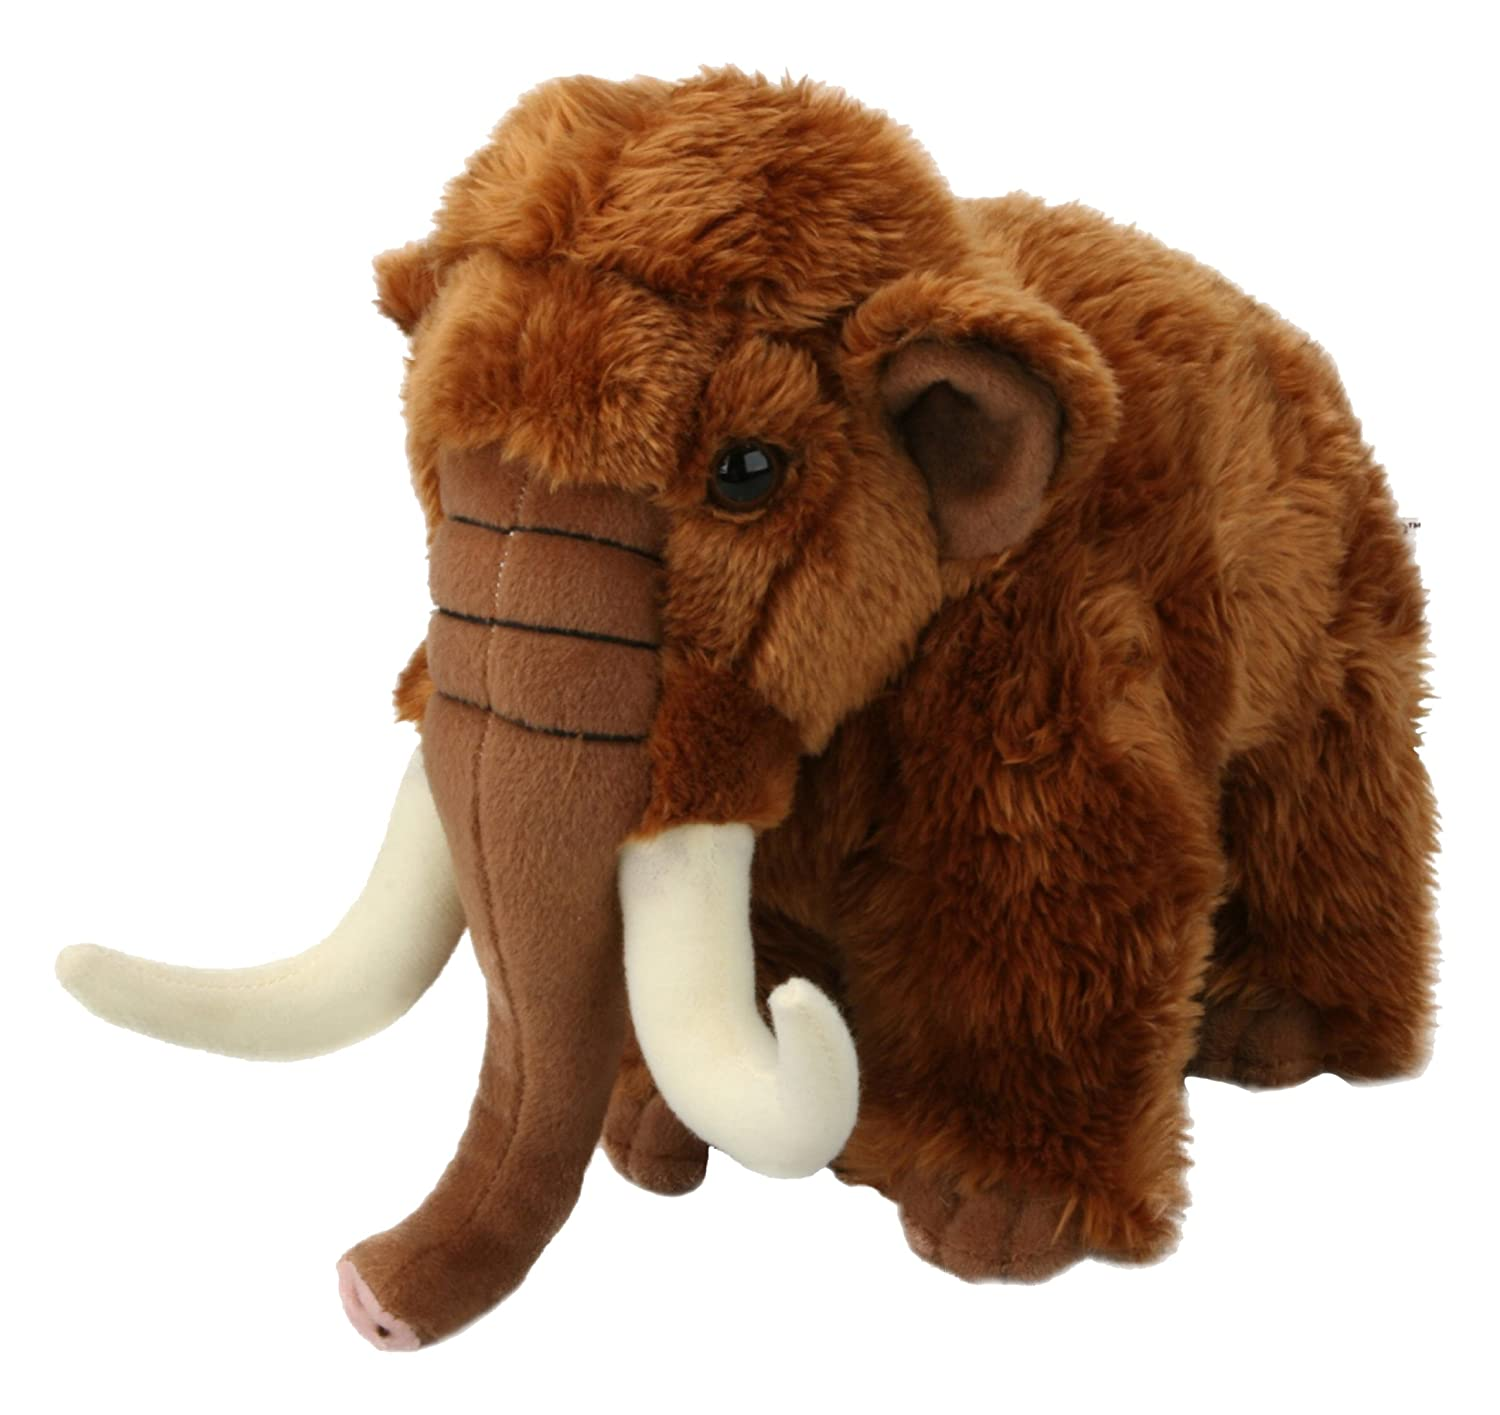 Living Nature-AN283 Woolly Mammoth 20cm Soft Plush Toy, Color Desconocido (Keycraft AN283